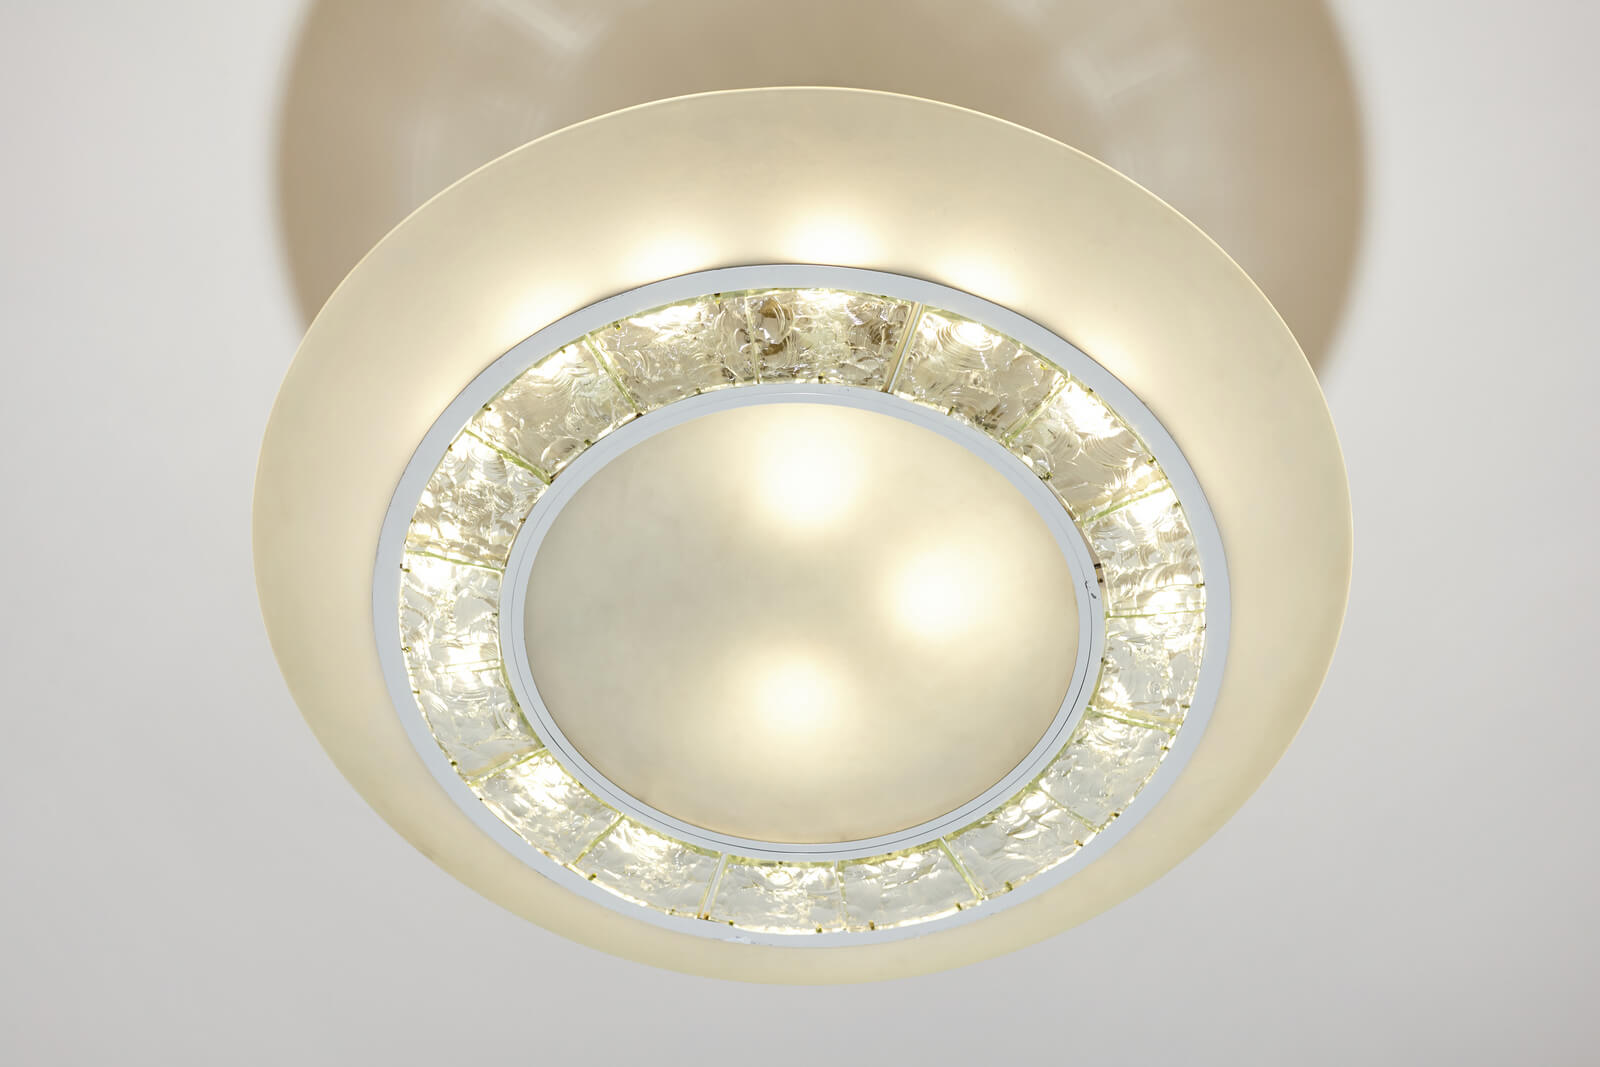 Ceiling lamp by Max Ingrand for sale